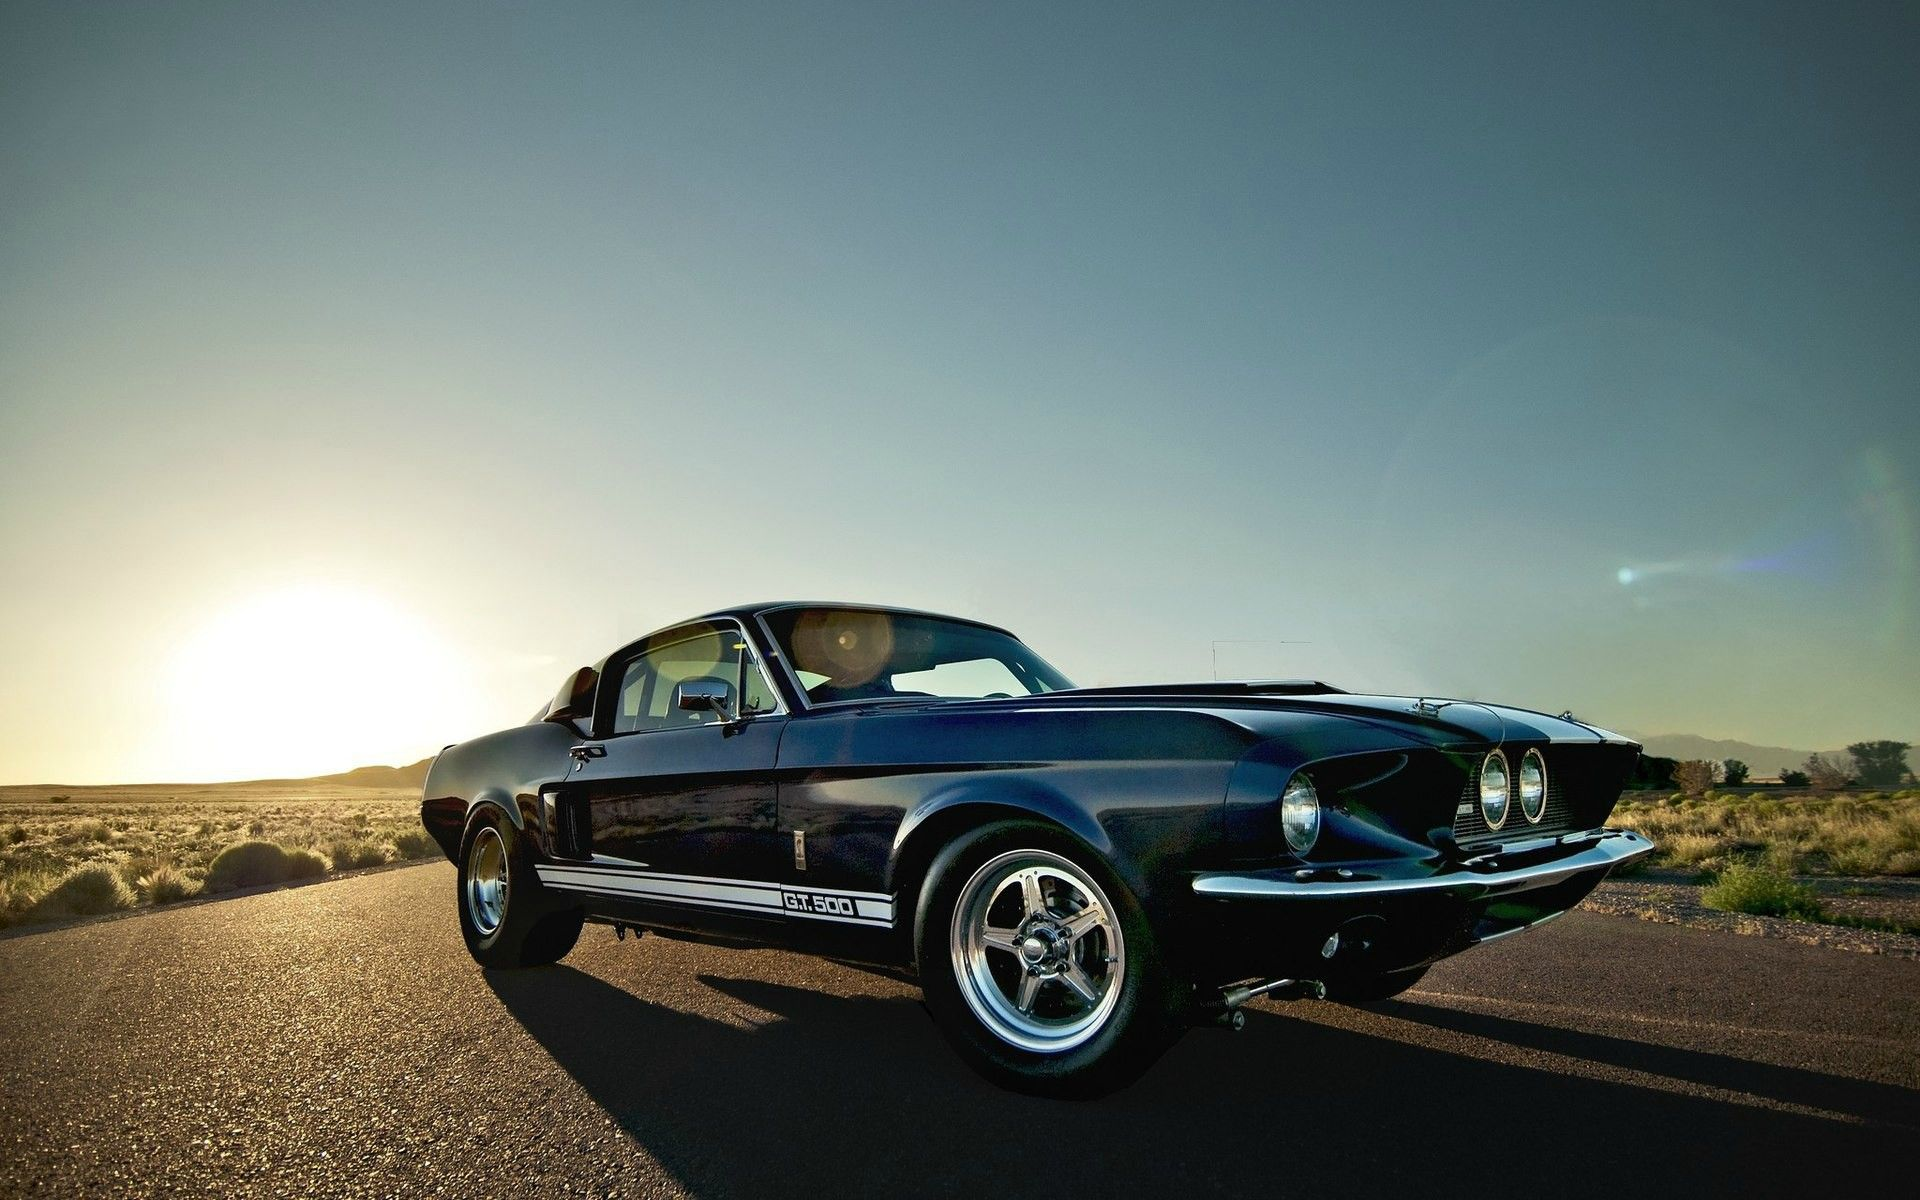 Shelby Gt500 Car Pictures And Wallpaper For Desktop With